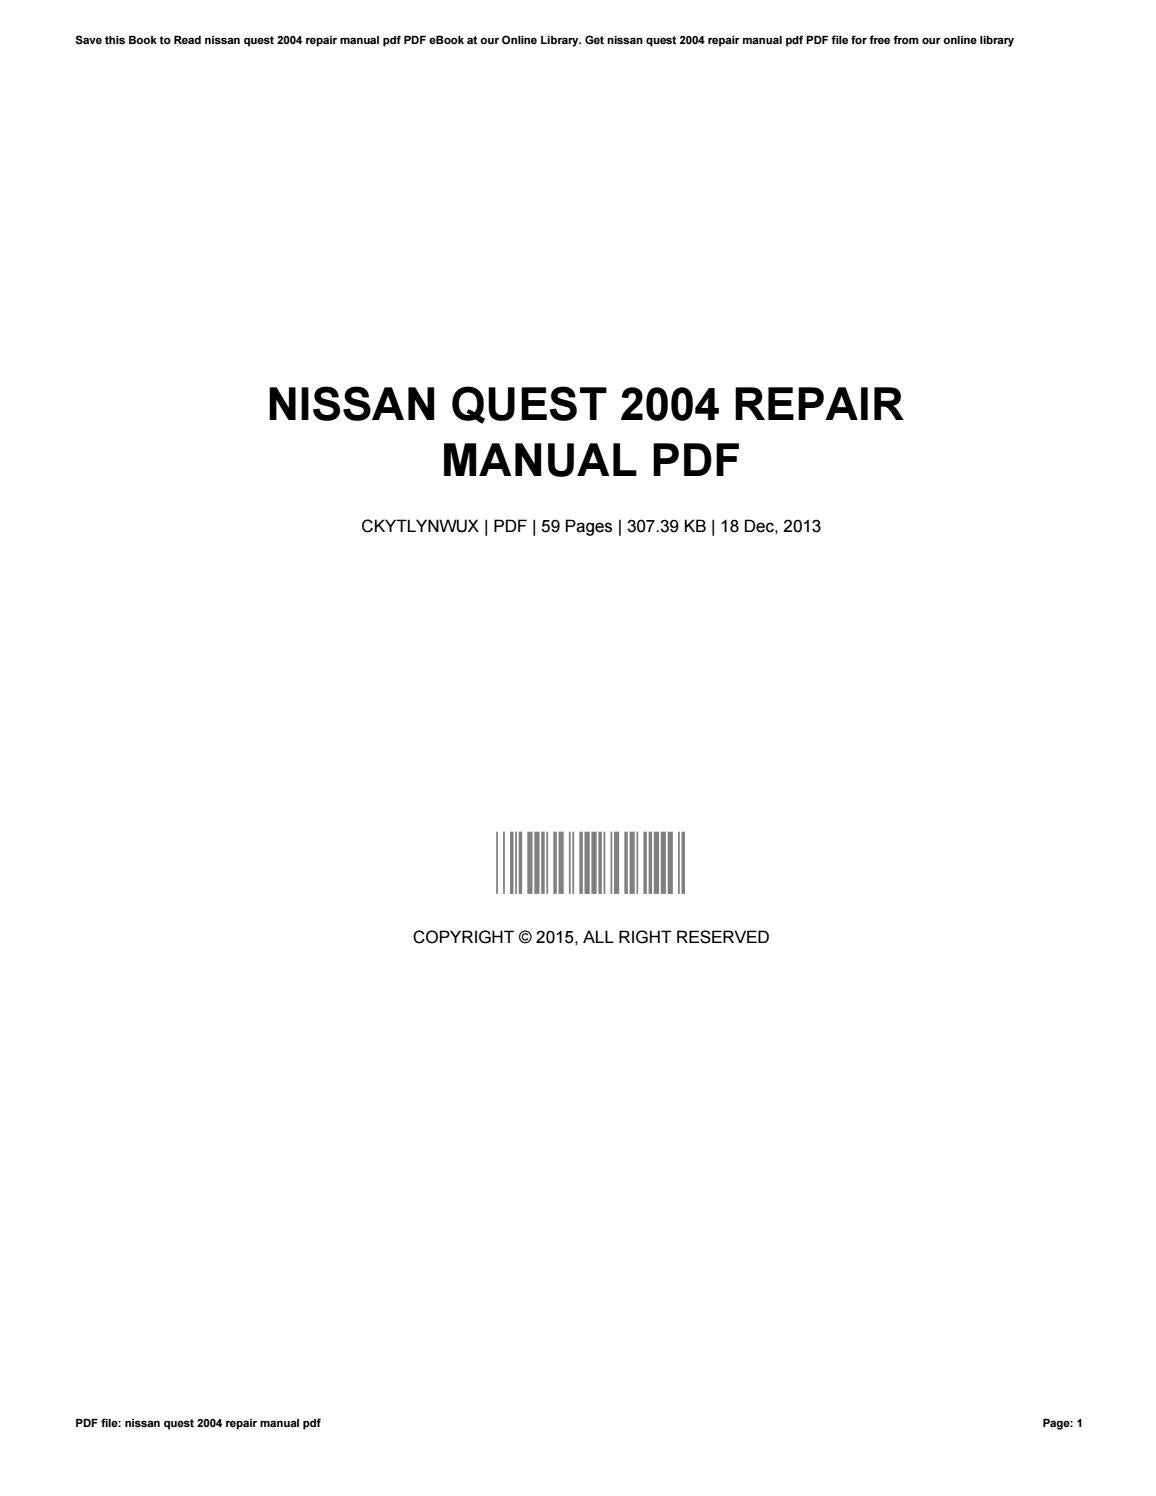 2004 nissan quest service manual